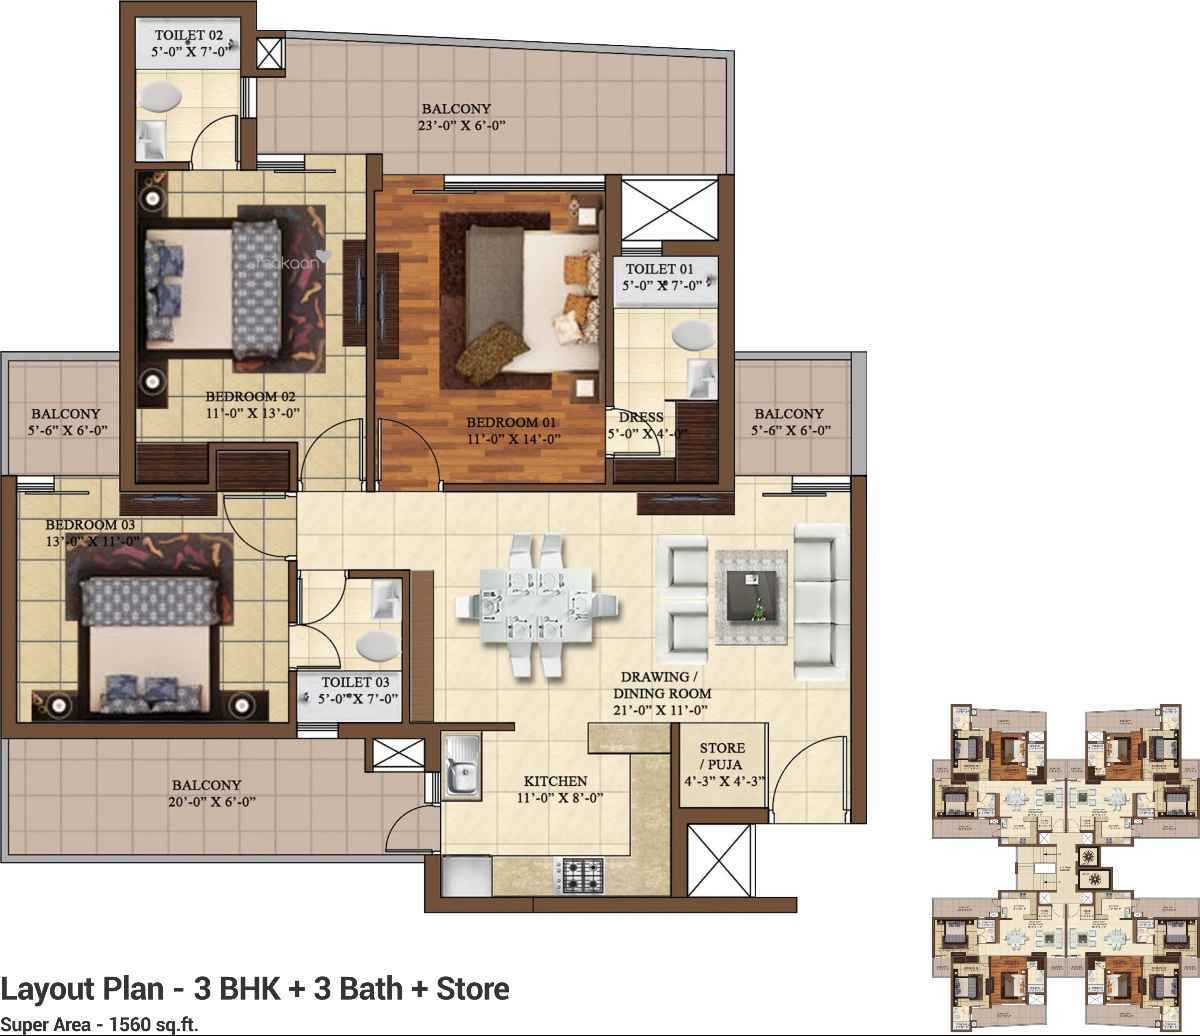 1560 sq ft 3BHK 3BHK+3T (1,560 sq ft) + Store Room Property By Nirmaaninfratech In hermitage pARK, Dhakoli Zirakpur